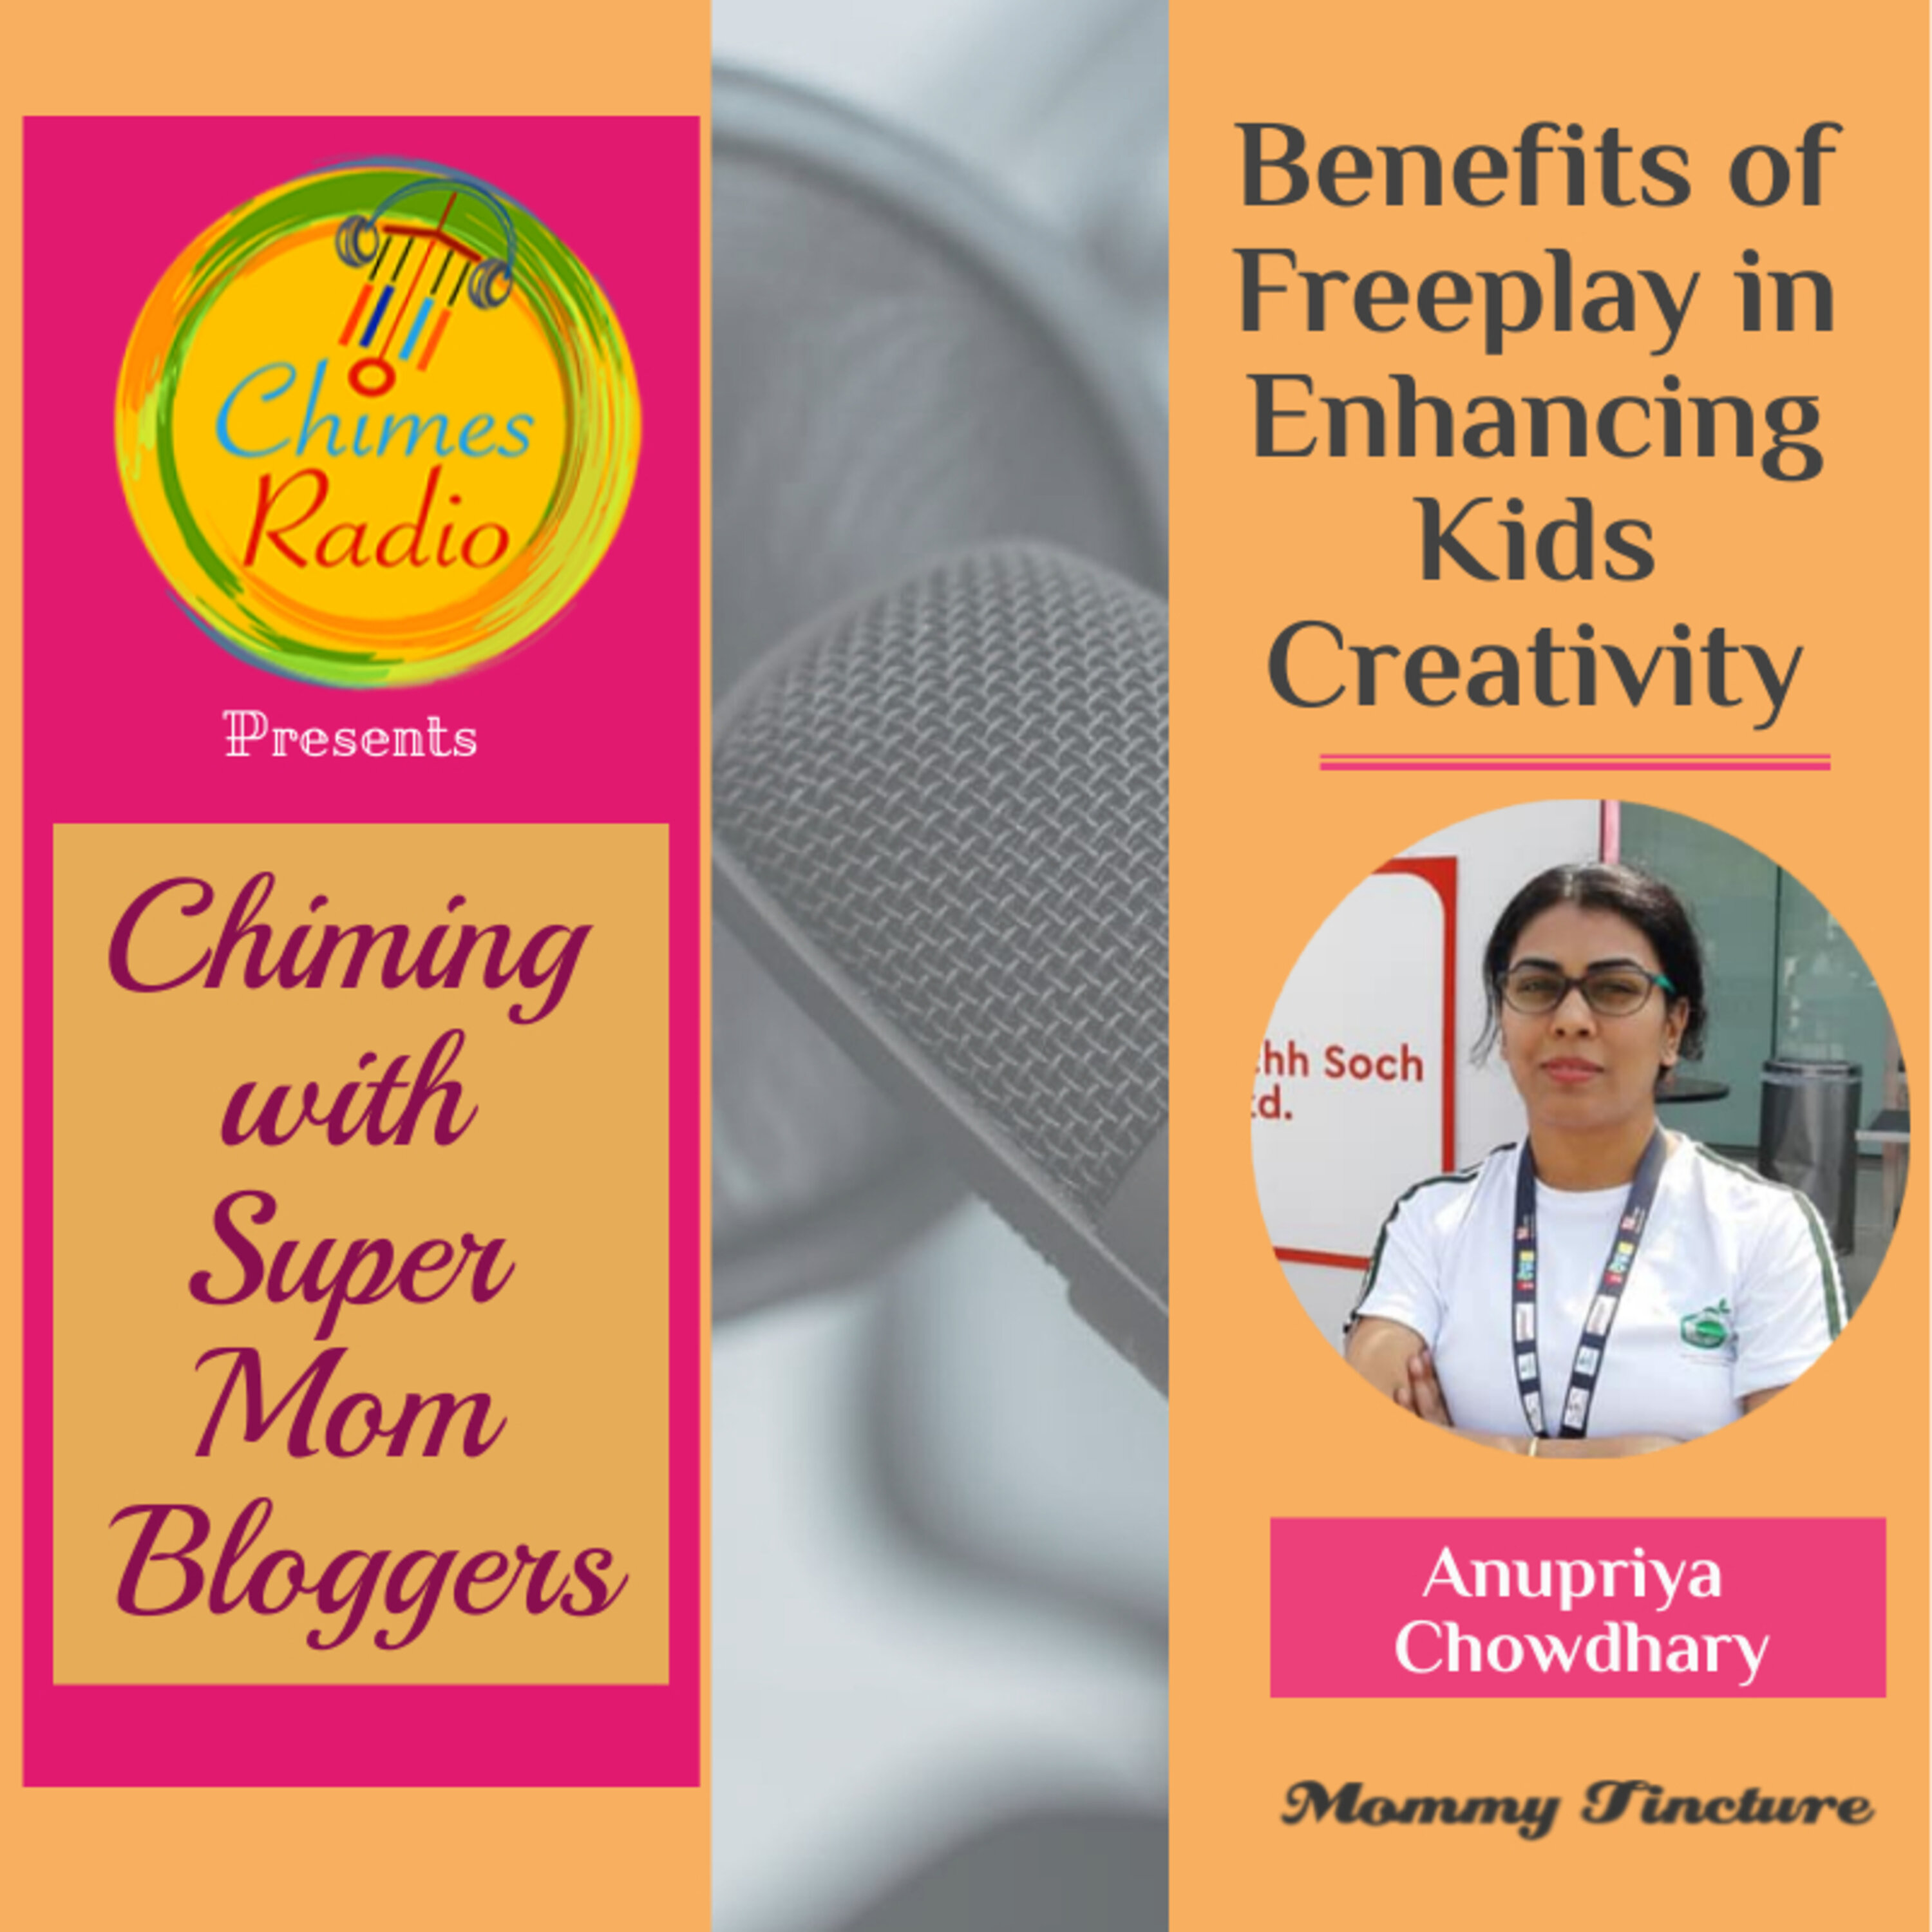 Super Mom Bloggers - Benefits of Free Play in Enhancing Kids Creativity